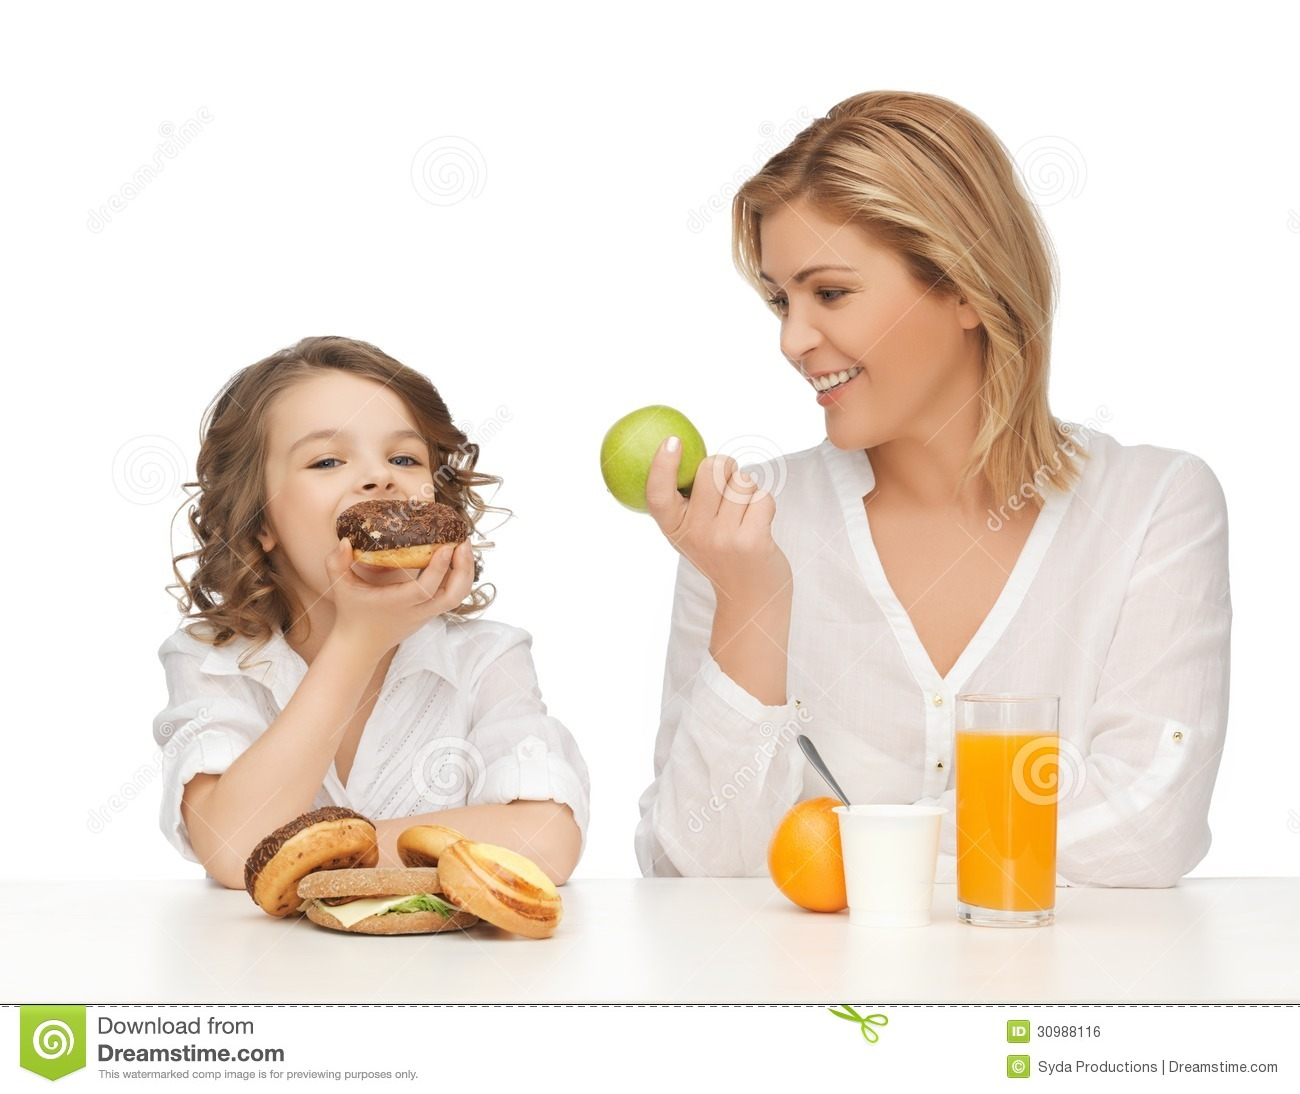 mother-daughter-healthy-unhealthy-food-30988116.jpg